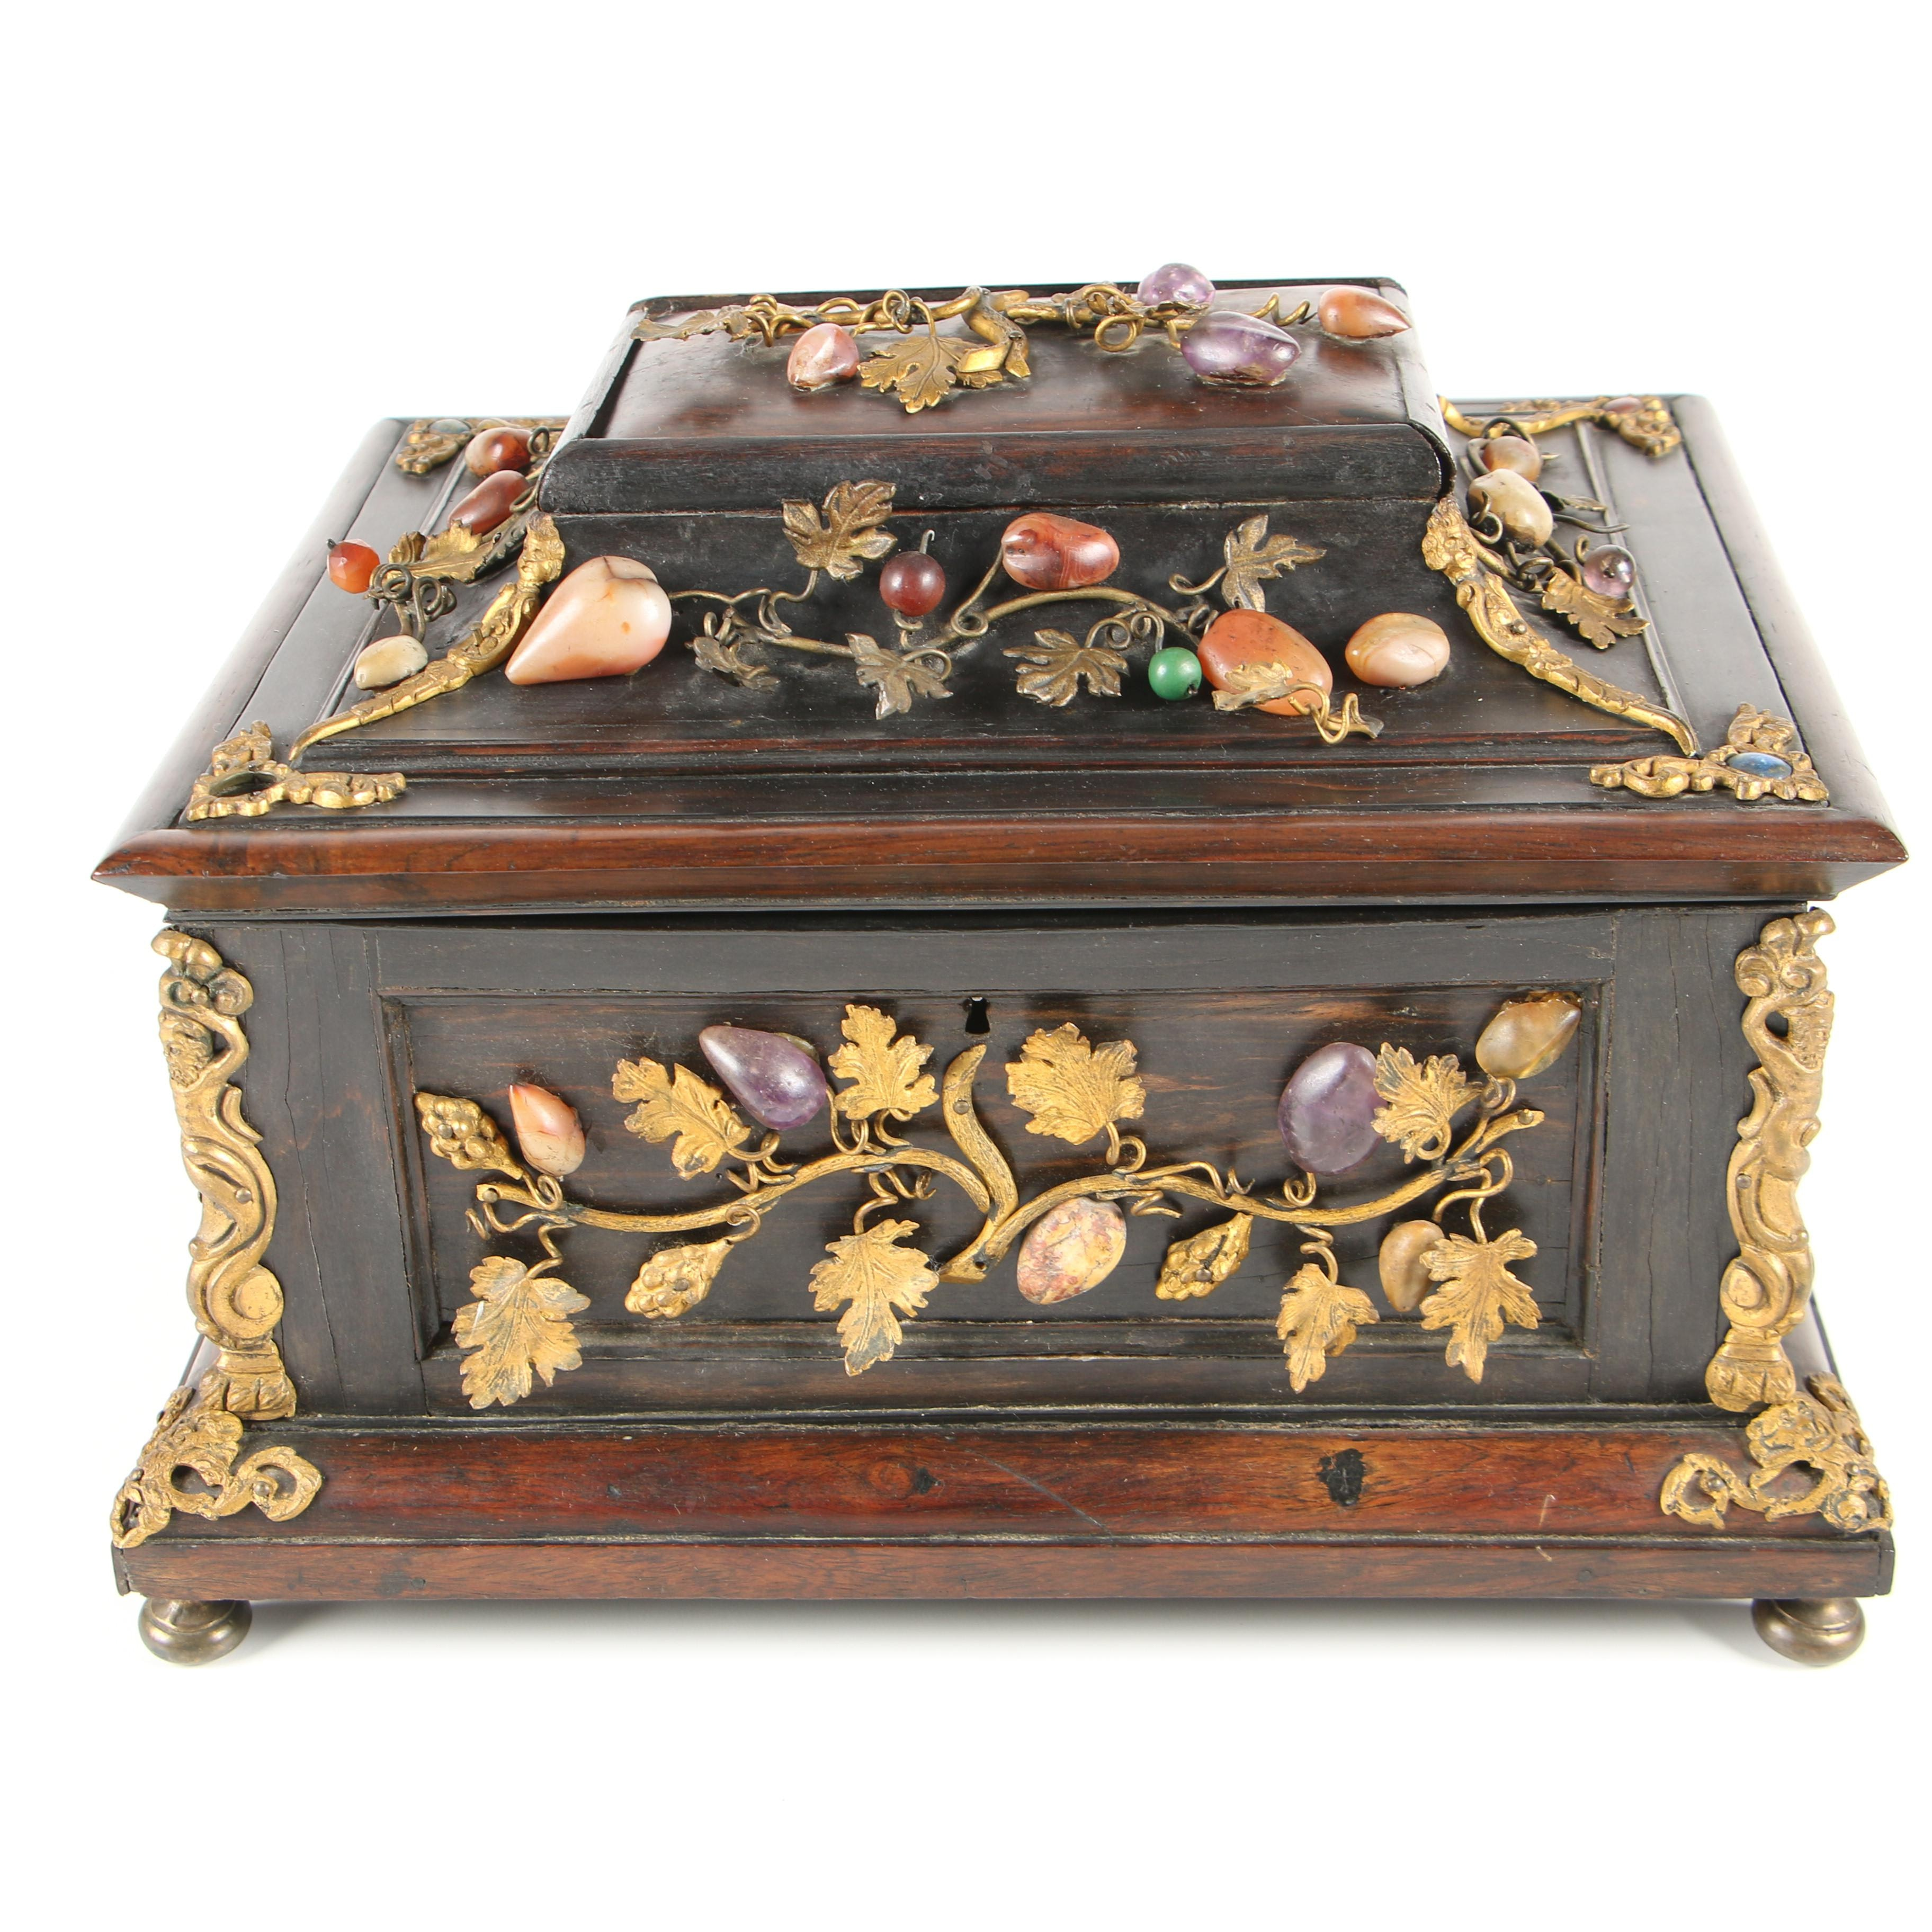 Gilt Metal and Gemstone Mounted Rosewood Jewelry Box